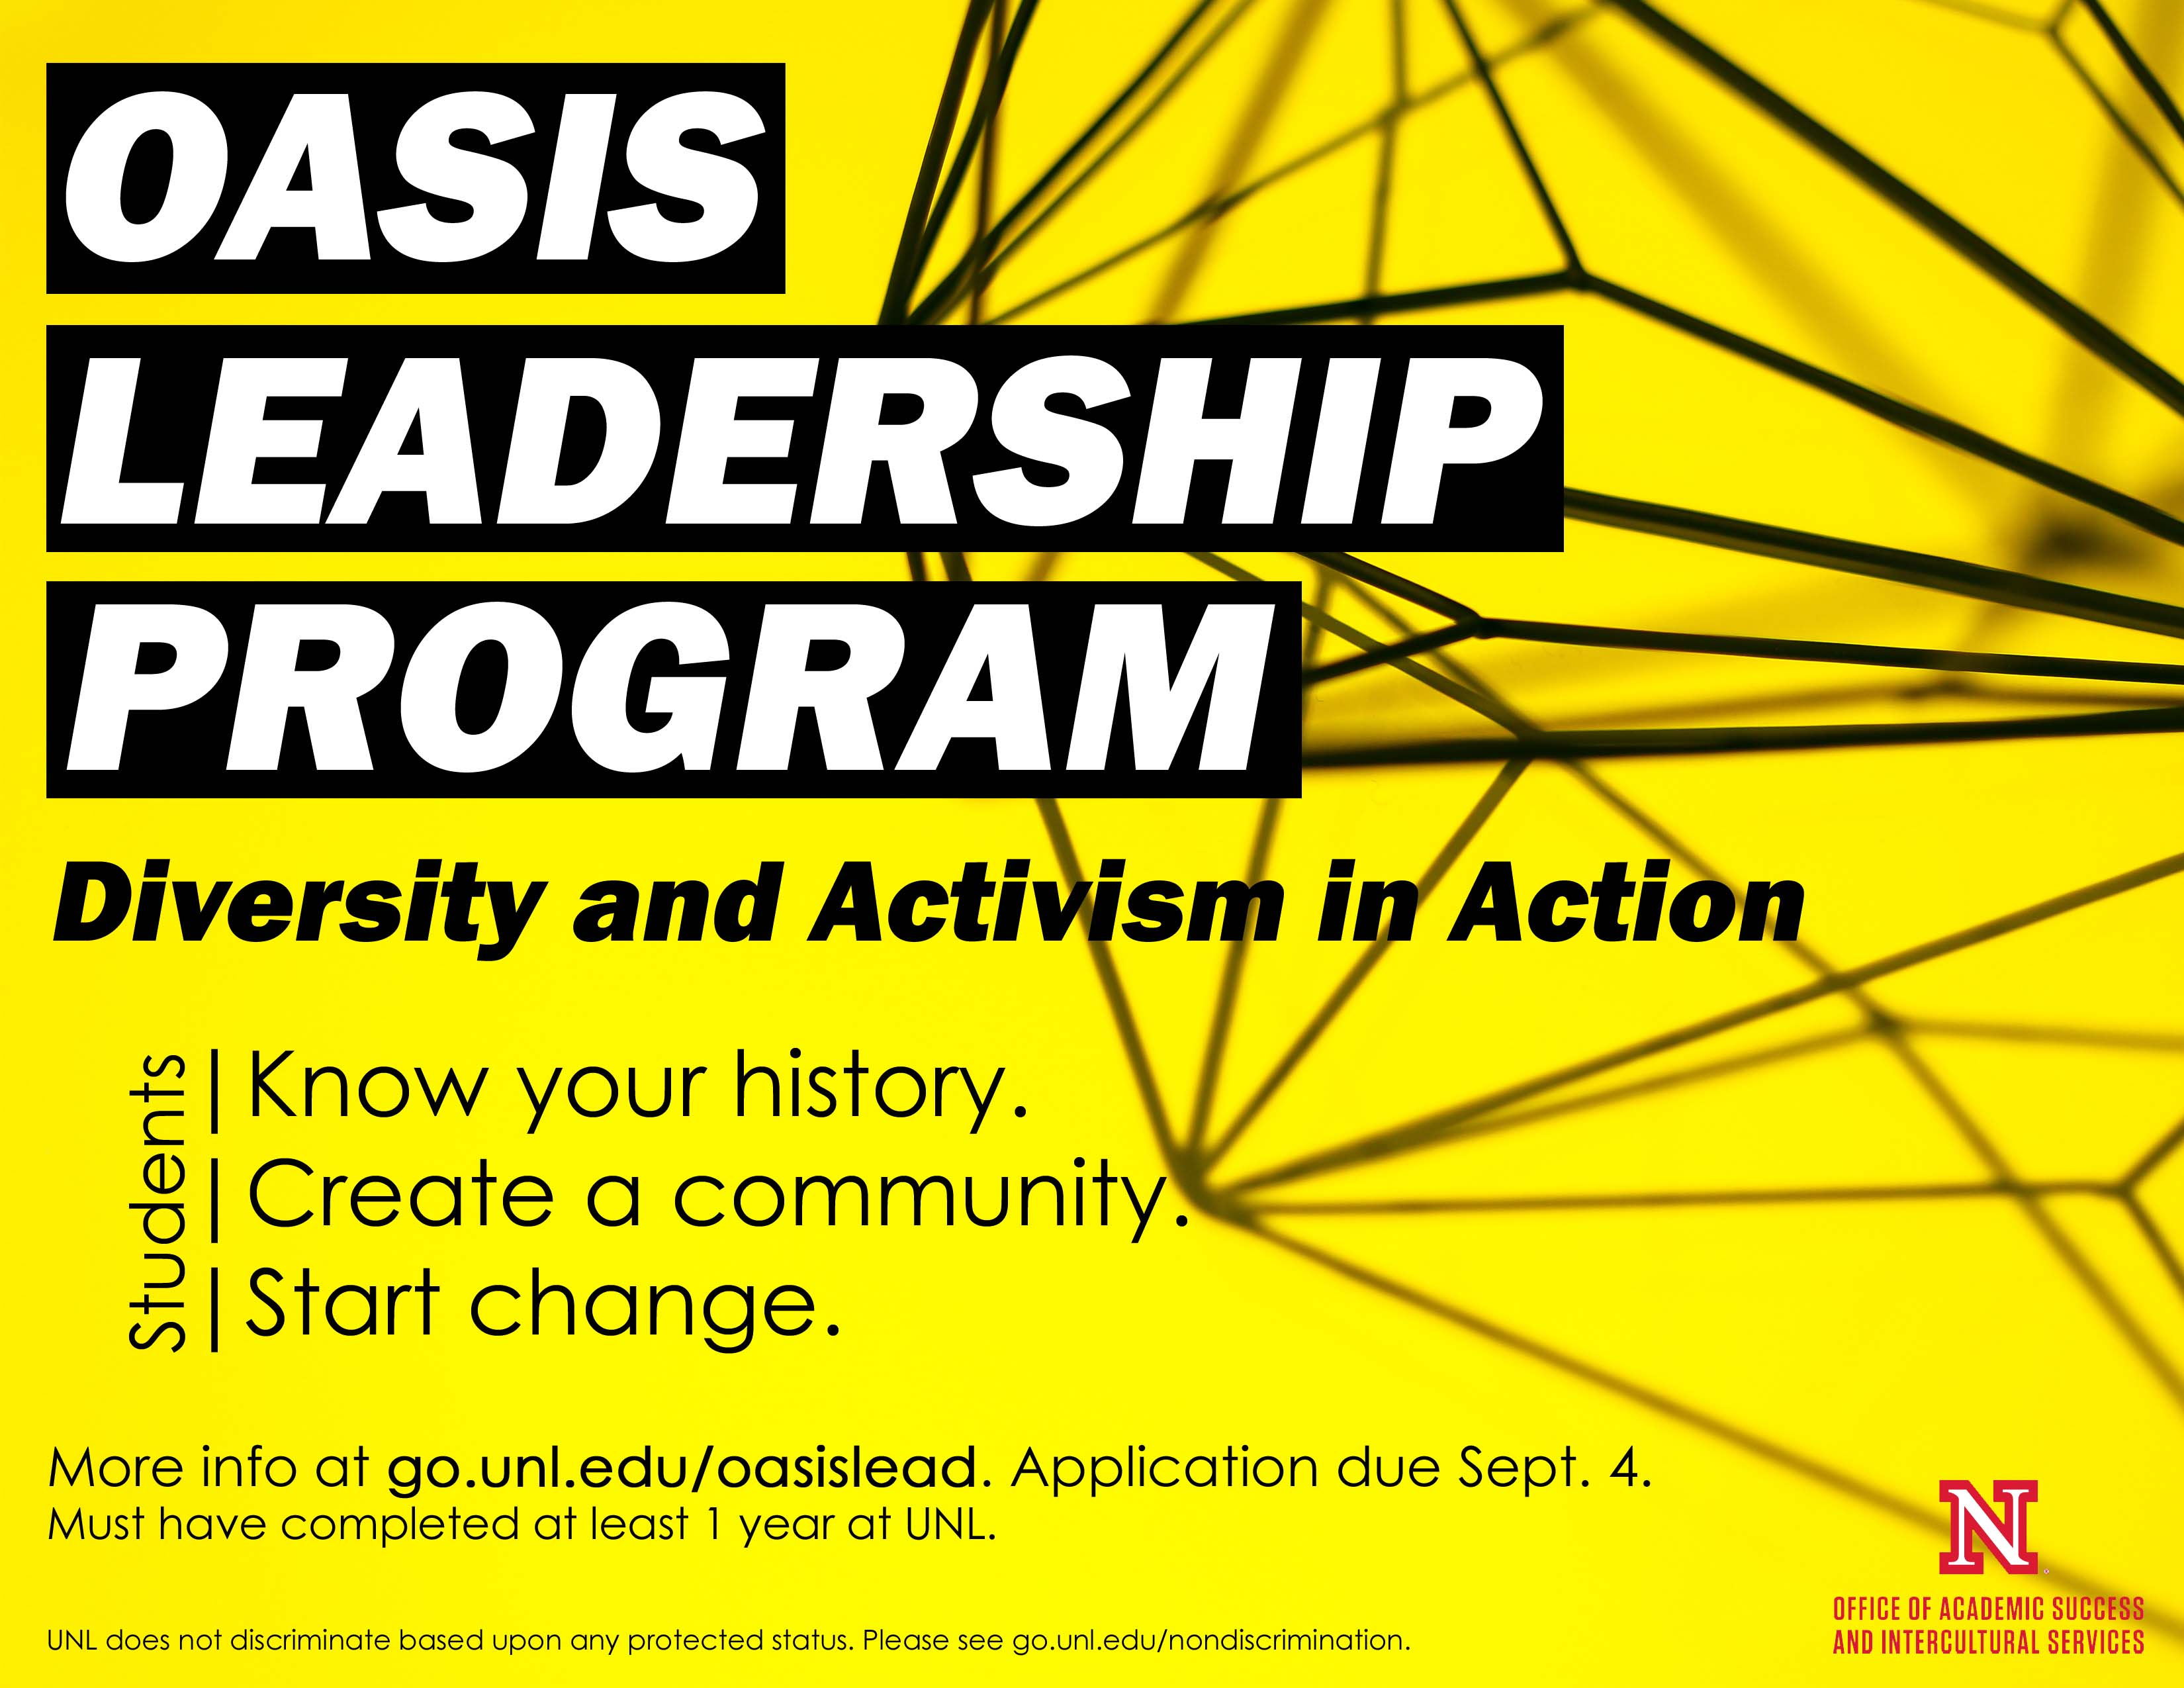 OASIS Leadership Program